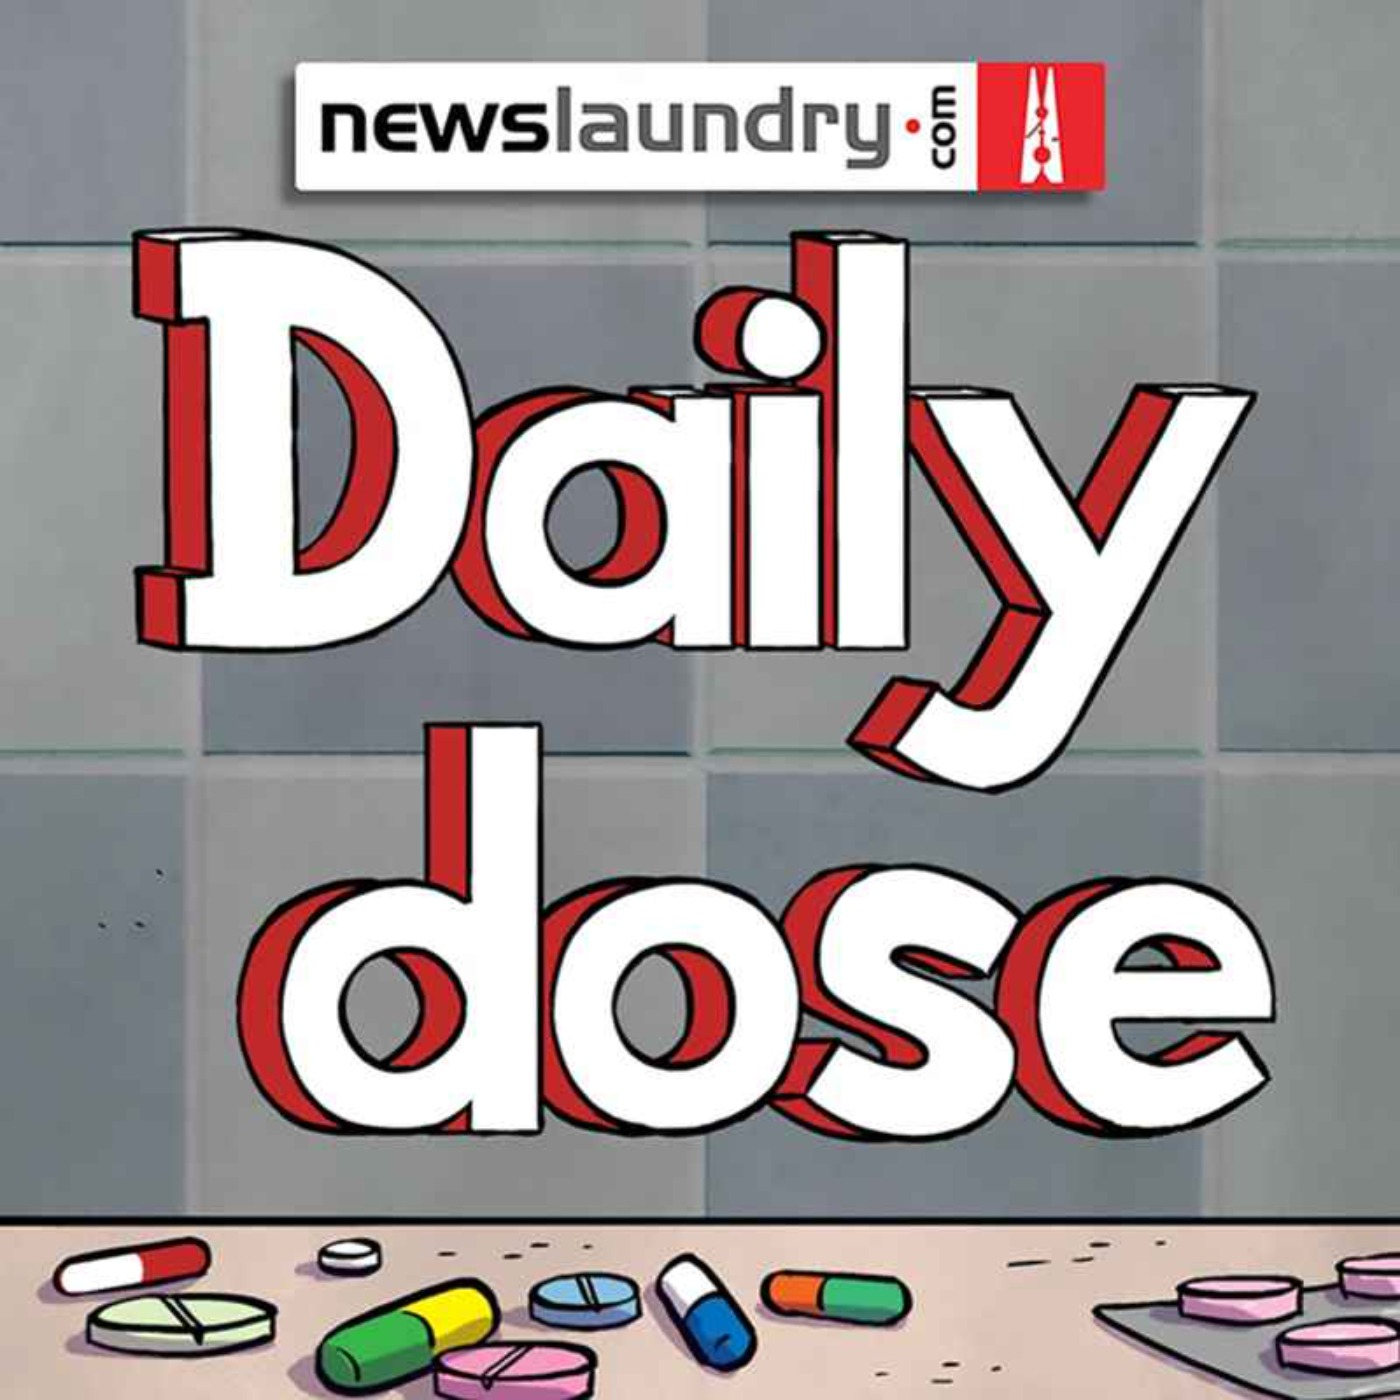 Daily Dose Ep 548: Bihar deputy CM, SpaceX NASA launch and Covid-19